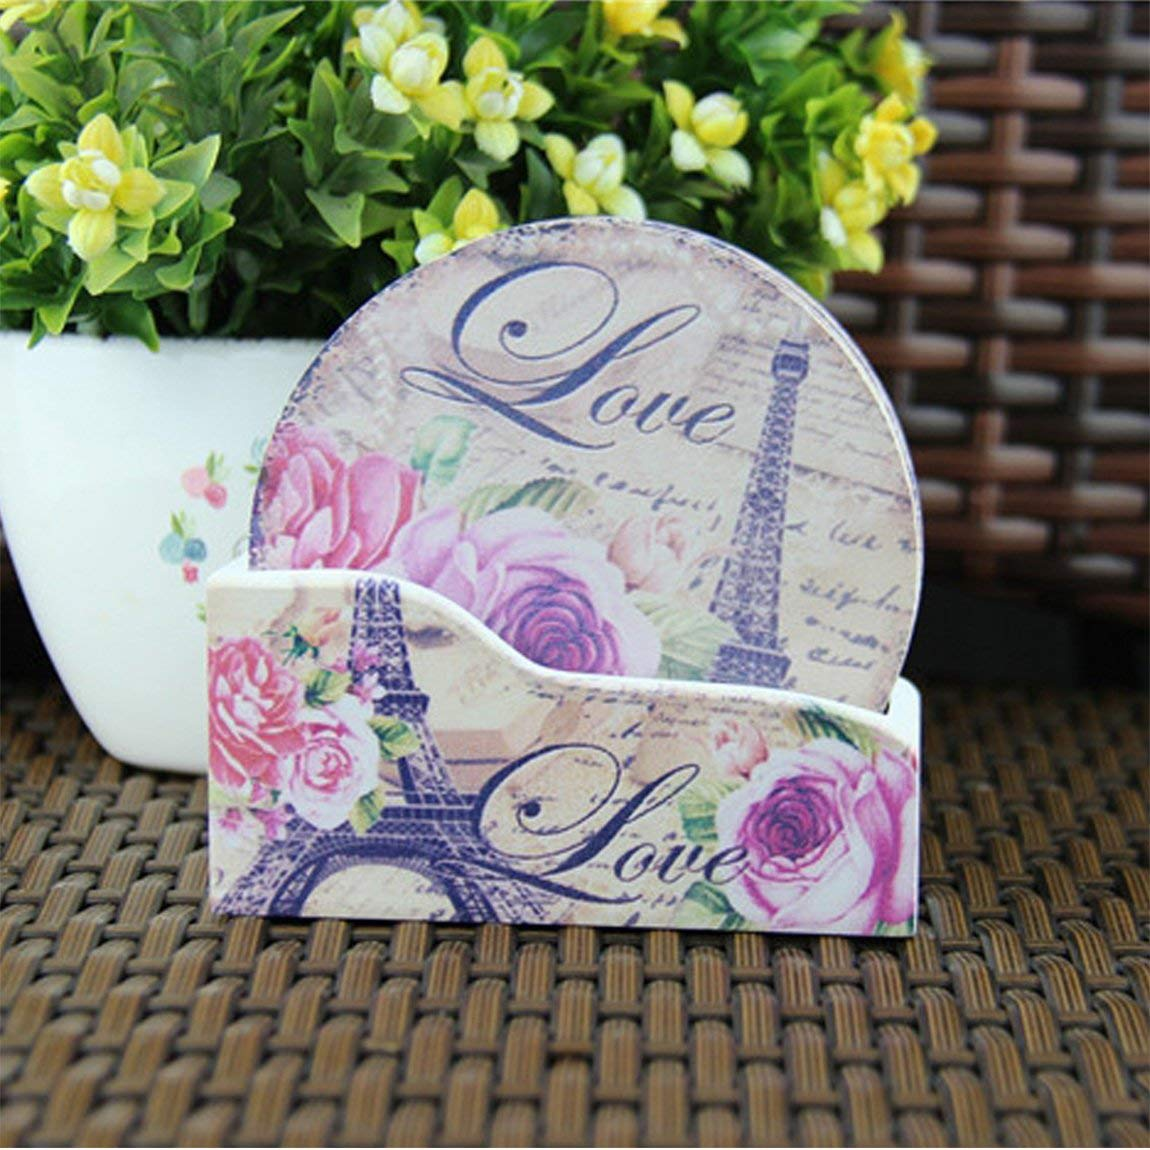 4.3 NO.6-Lavender NewFerU Cork Absorbent Coasters with Holder Decorative Round Heat Resistant Pad Mats Spoon Rest Trivet Set Table Runner Kit Large for 6 Drinks Hot Pans,Pots,Stovetop,Countertops